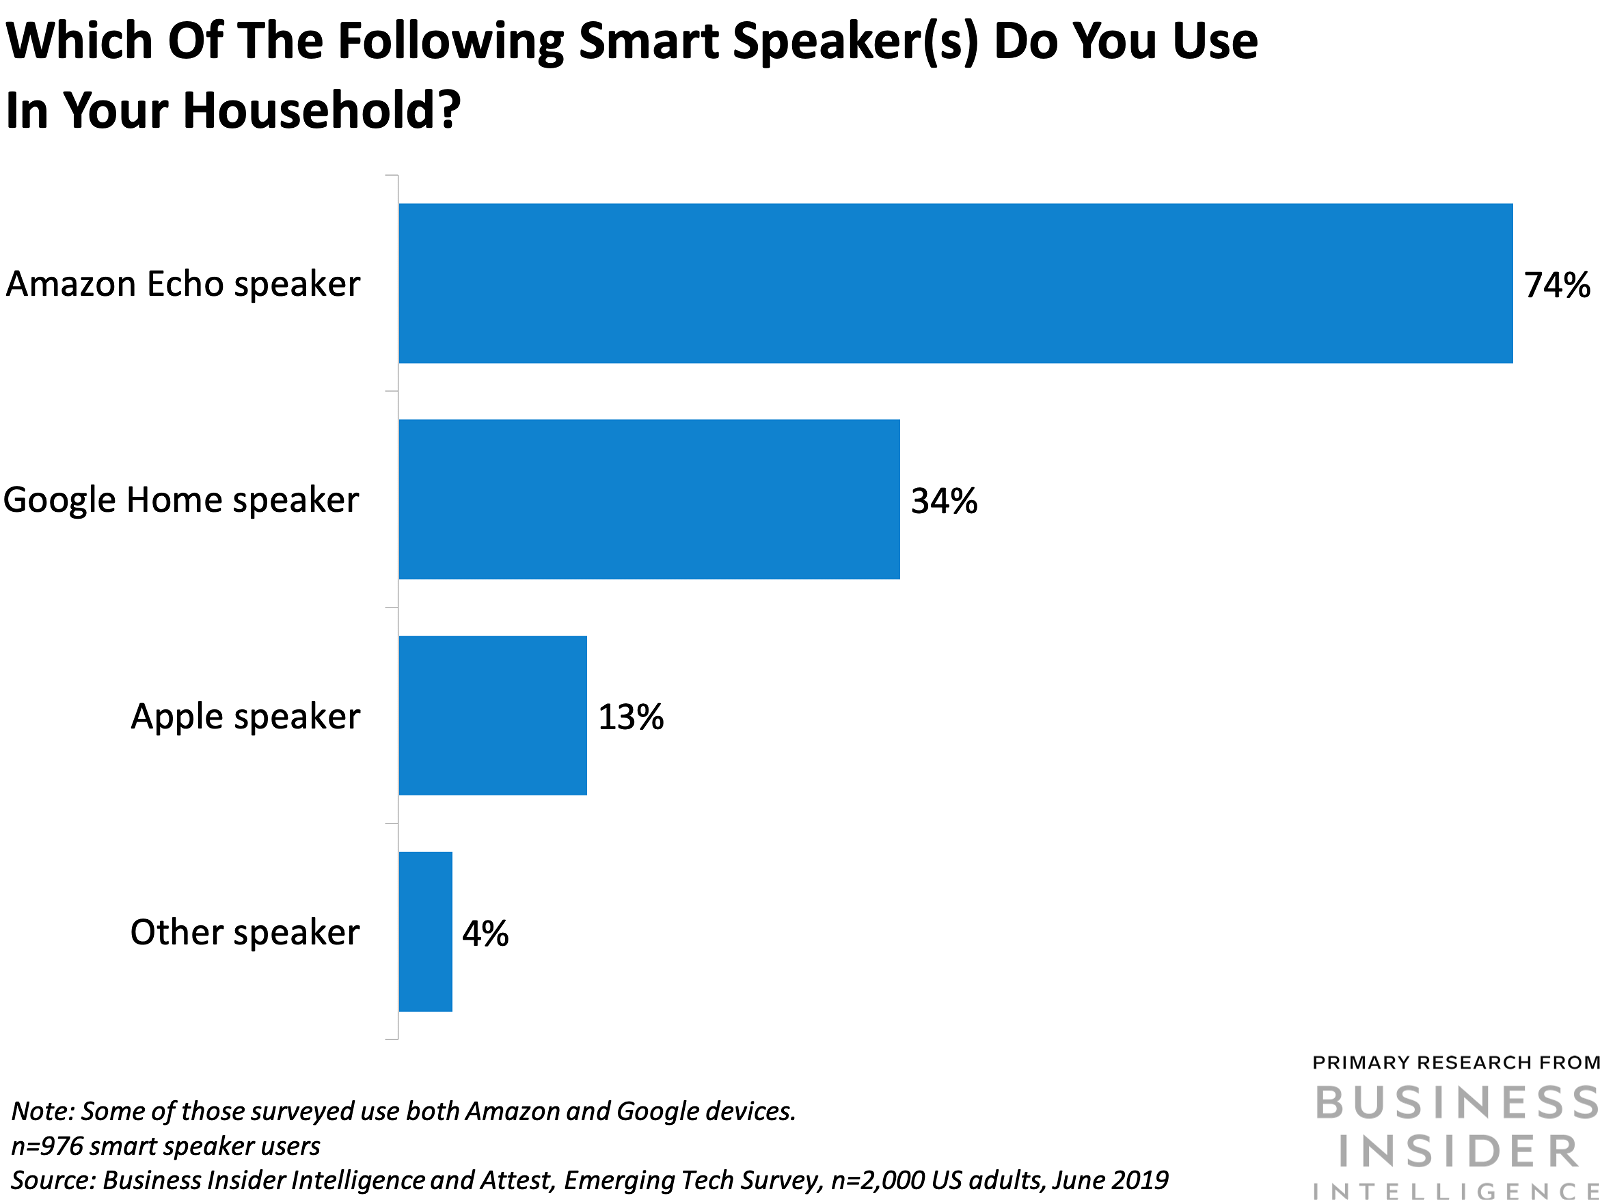 Installed base is key to winning in the smart speaker race and Amazon is dominating by a wide margin.